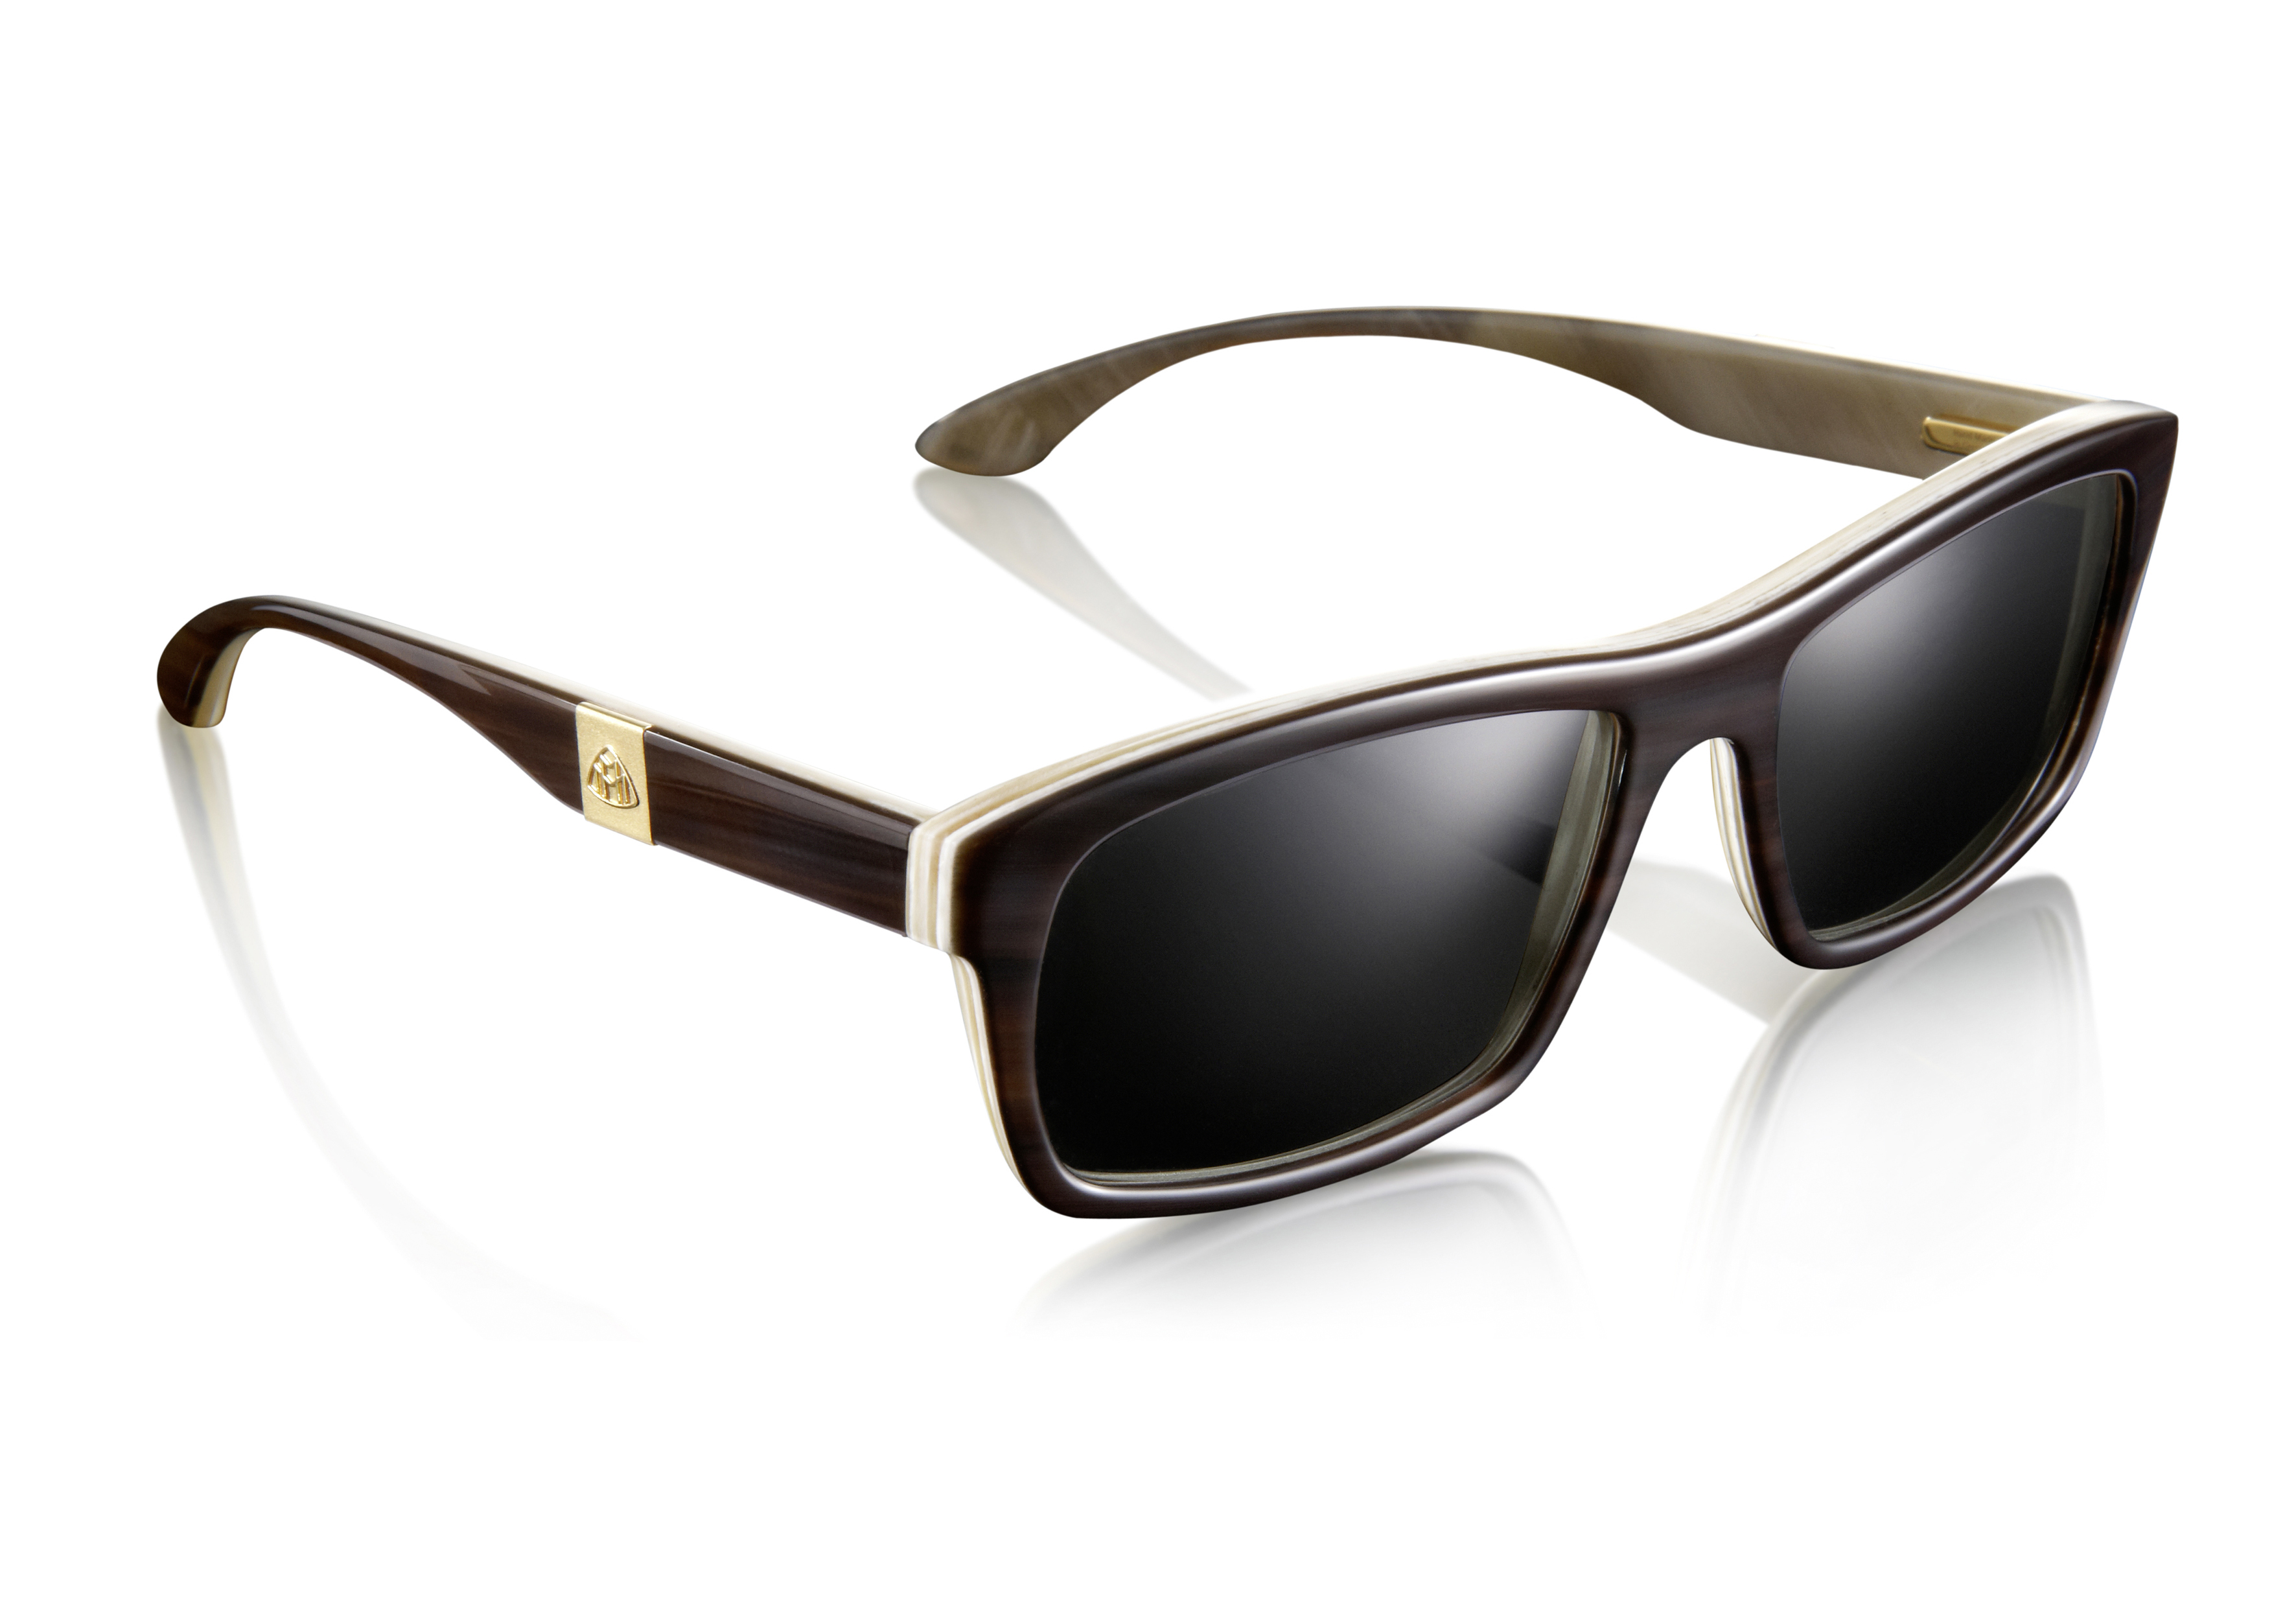 f219562d10b Maybach Launches Luxury Eyewear Collection